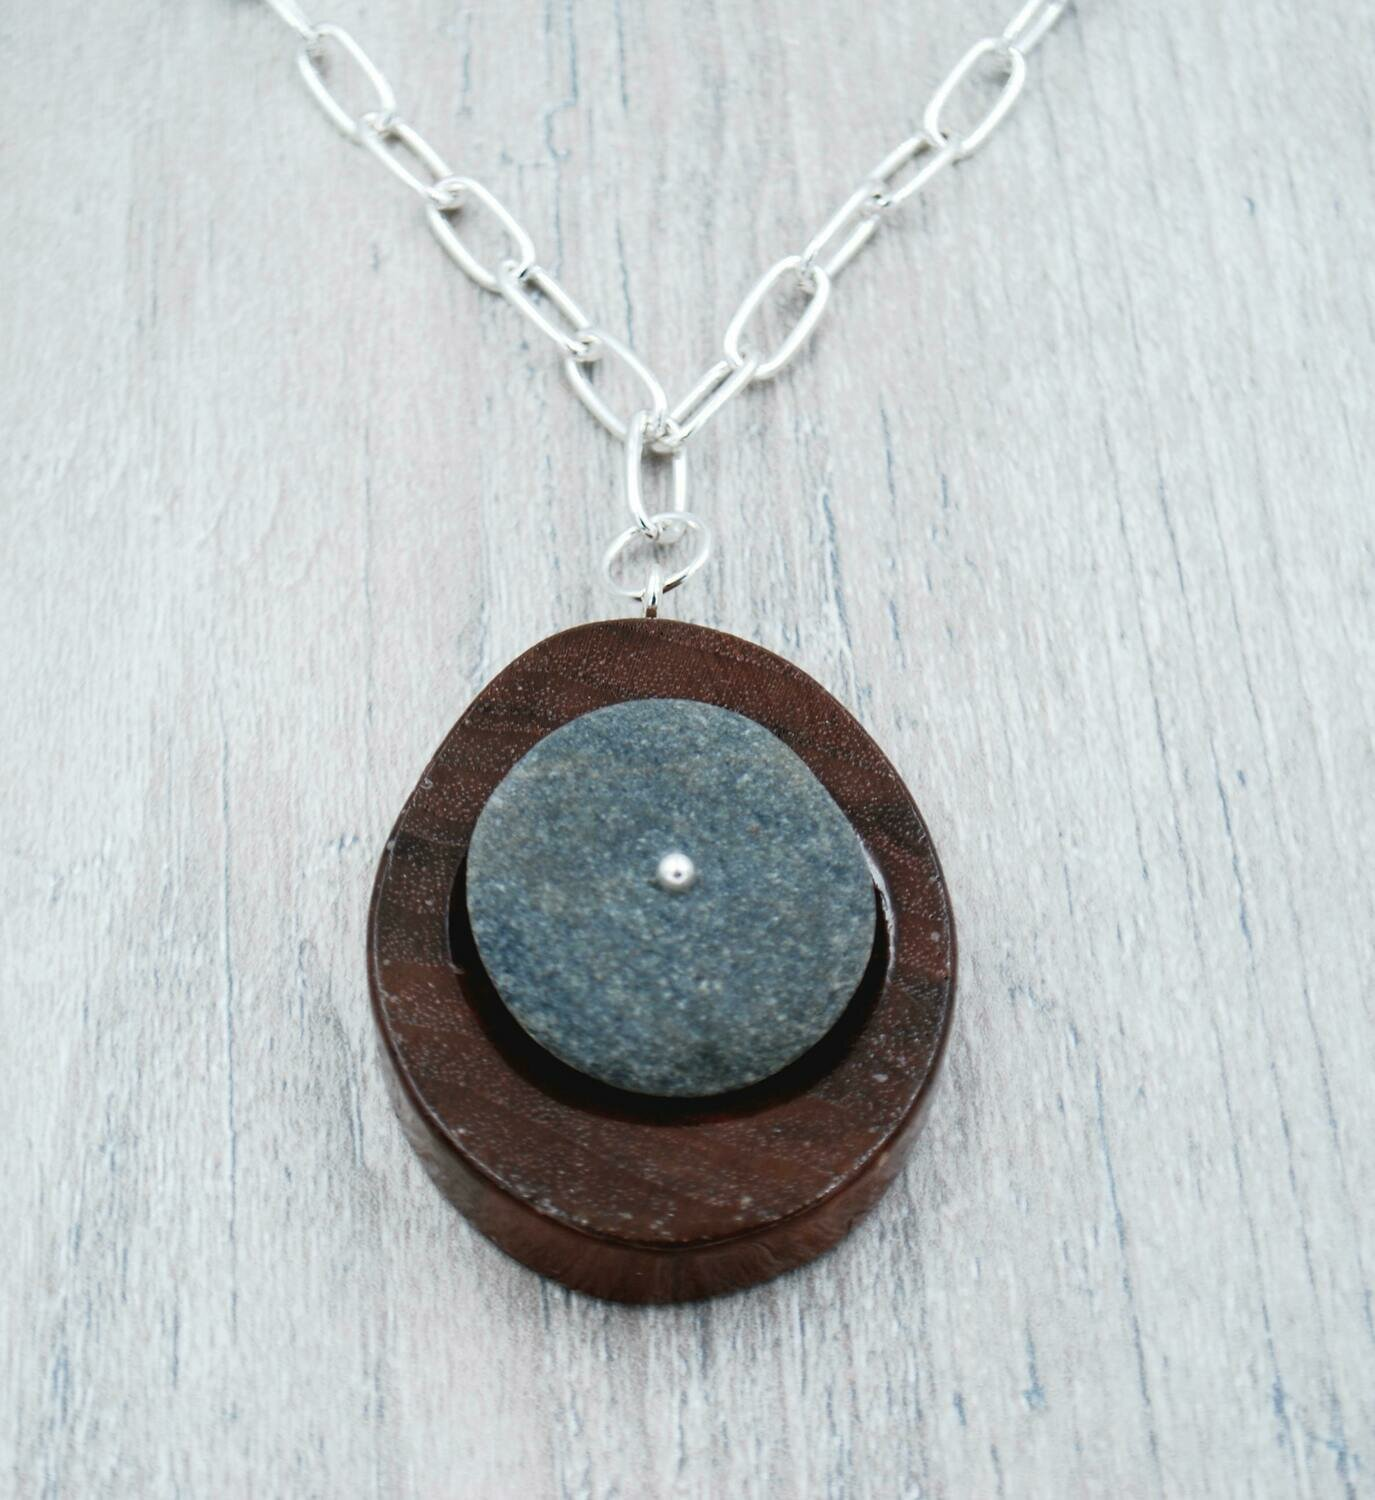 Walnut Wood and Lake Erie Beach Pebble Necklace